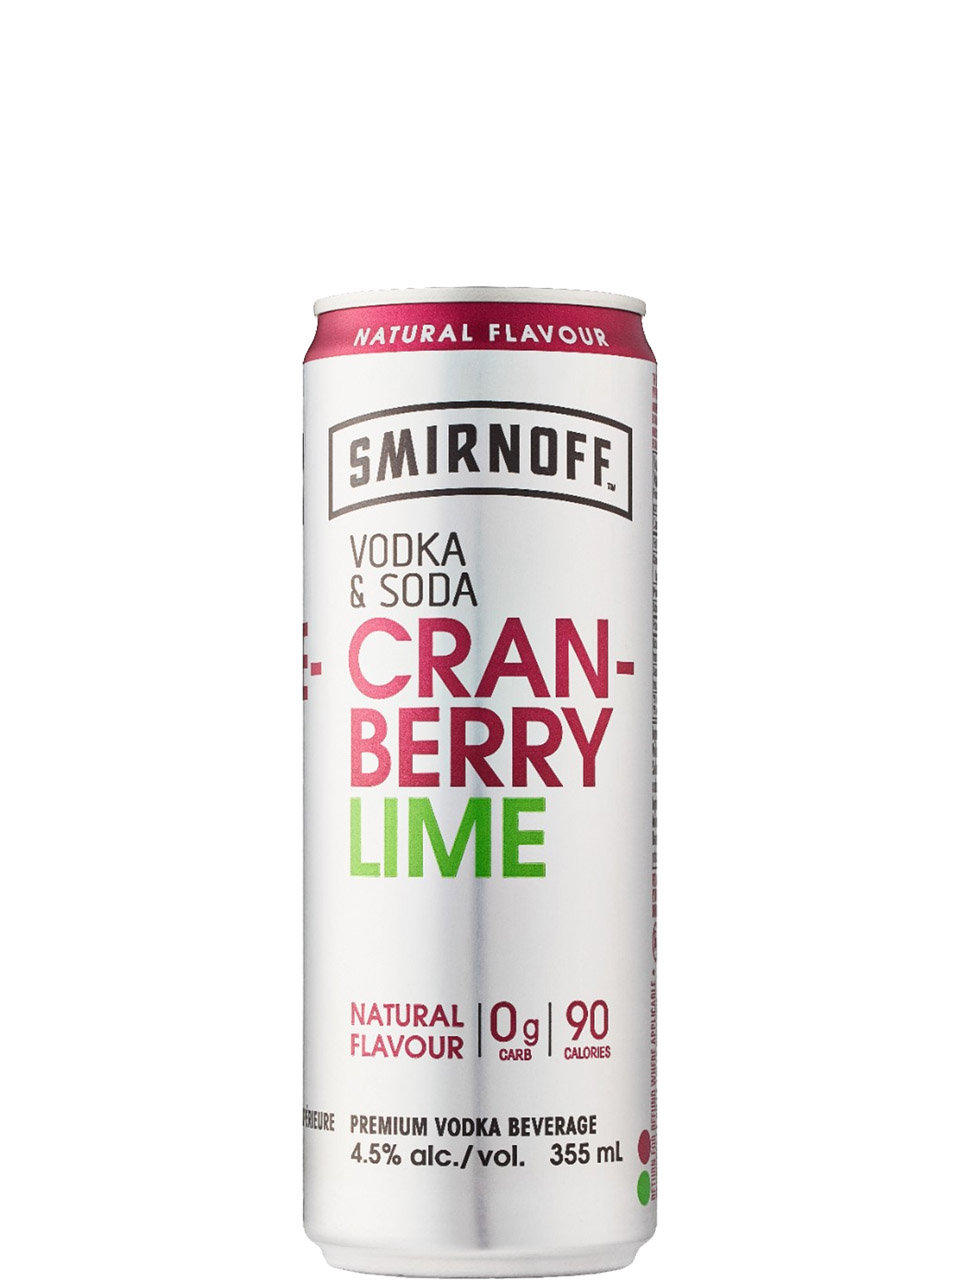 Smirnoff Vodka & Soda Cranberry Lime 4 Pack Cans